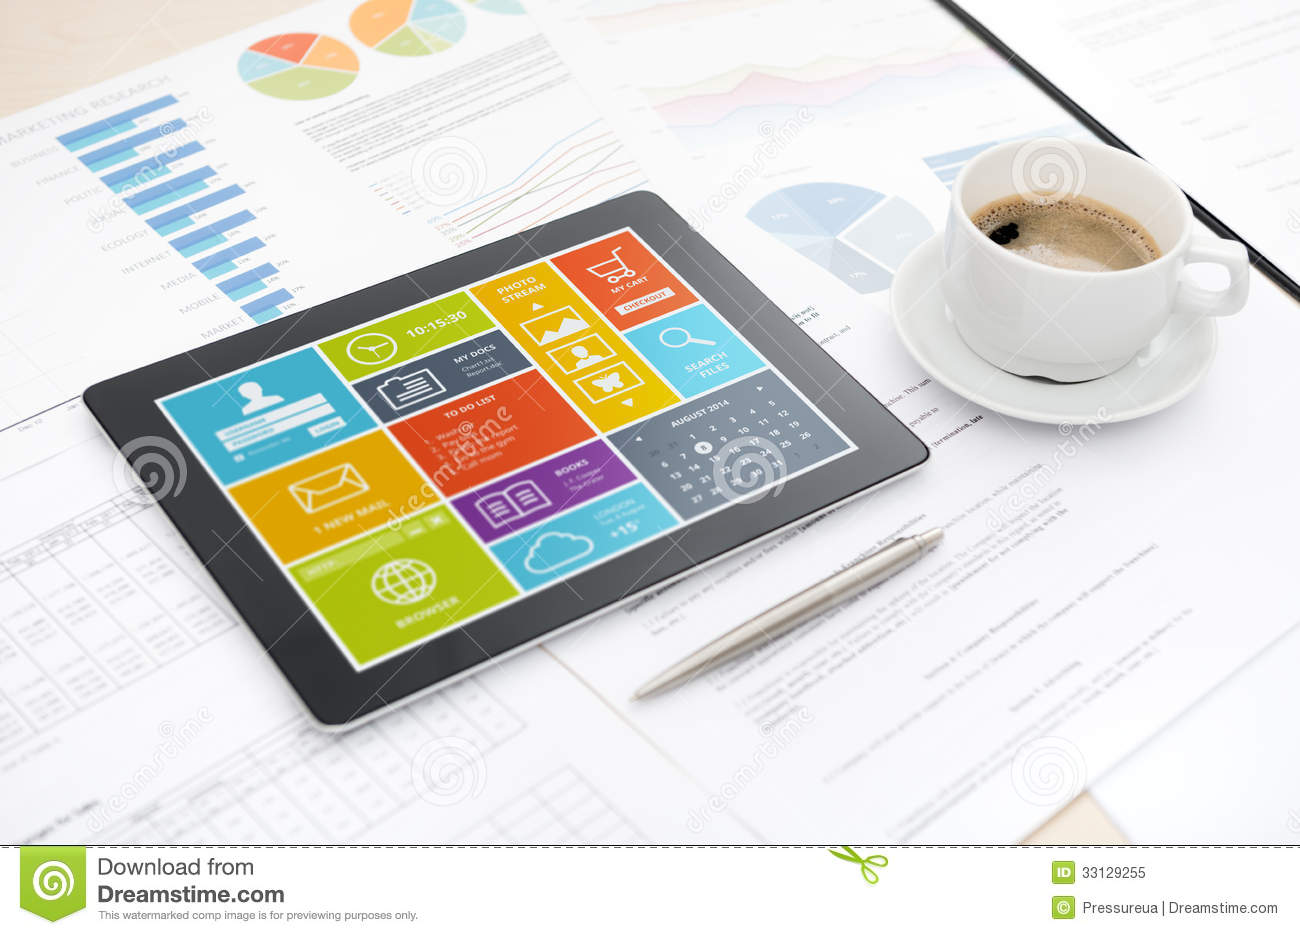 tablet with colorful modern user interface on a screen lying on a desk